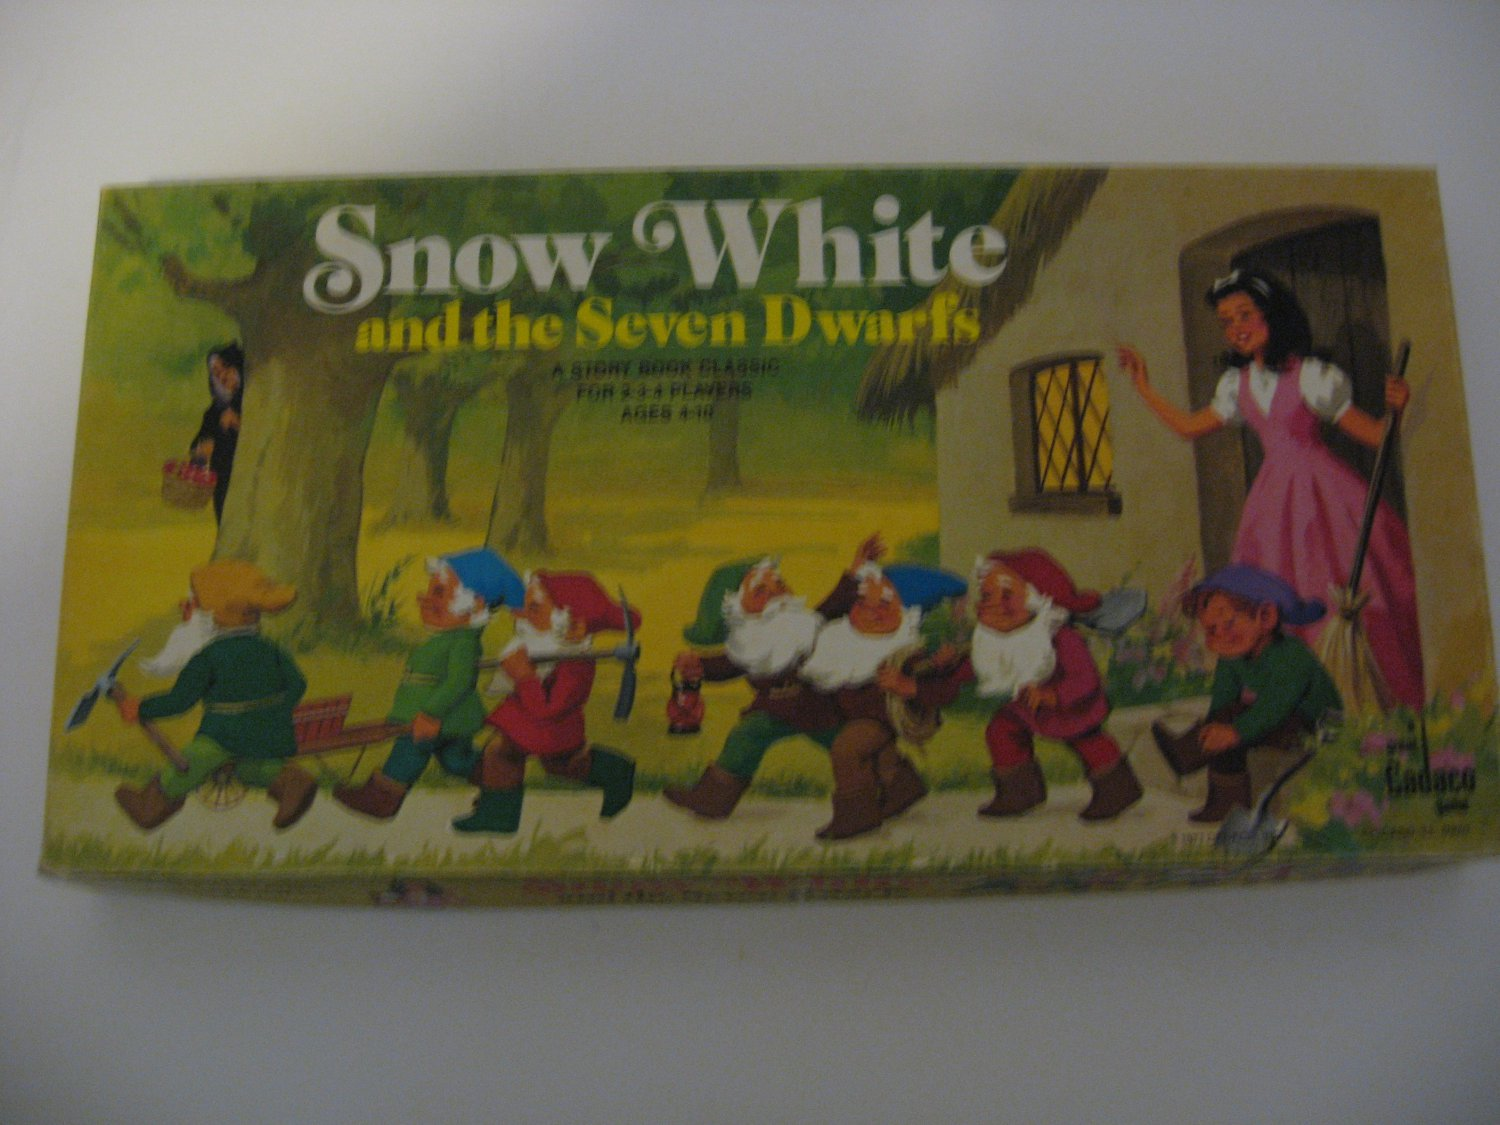 Vintage 1977 Cadaco Snow White & The Seven Dwarfs Game